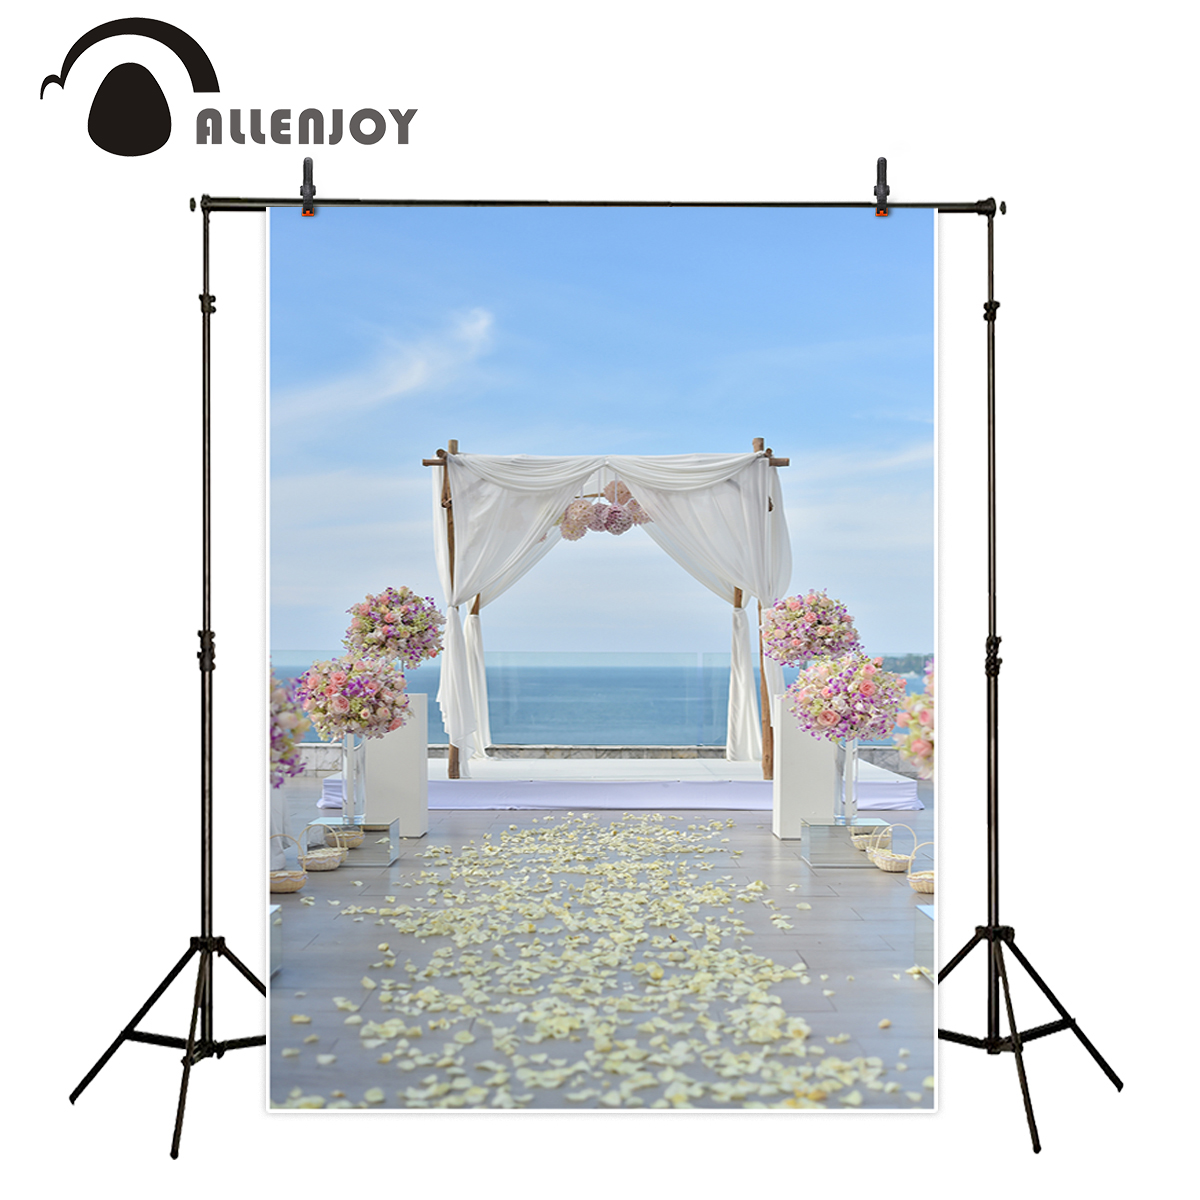 Allenjoy wedding celebration background photography romantic dreamy seaside bunched floral rose studio photographic backdrop allenjoy 10ftx6 5ft fireworks photography backdrop black night romantic wedding background for photography studio without stand